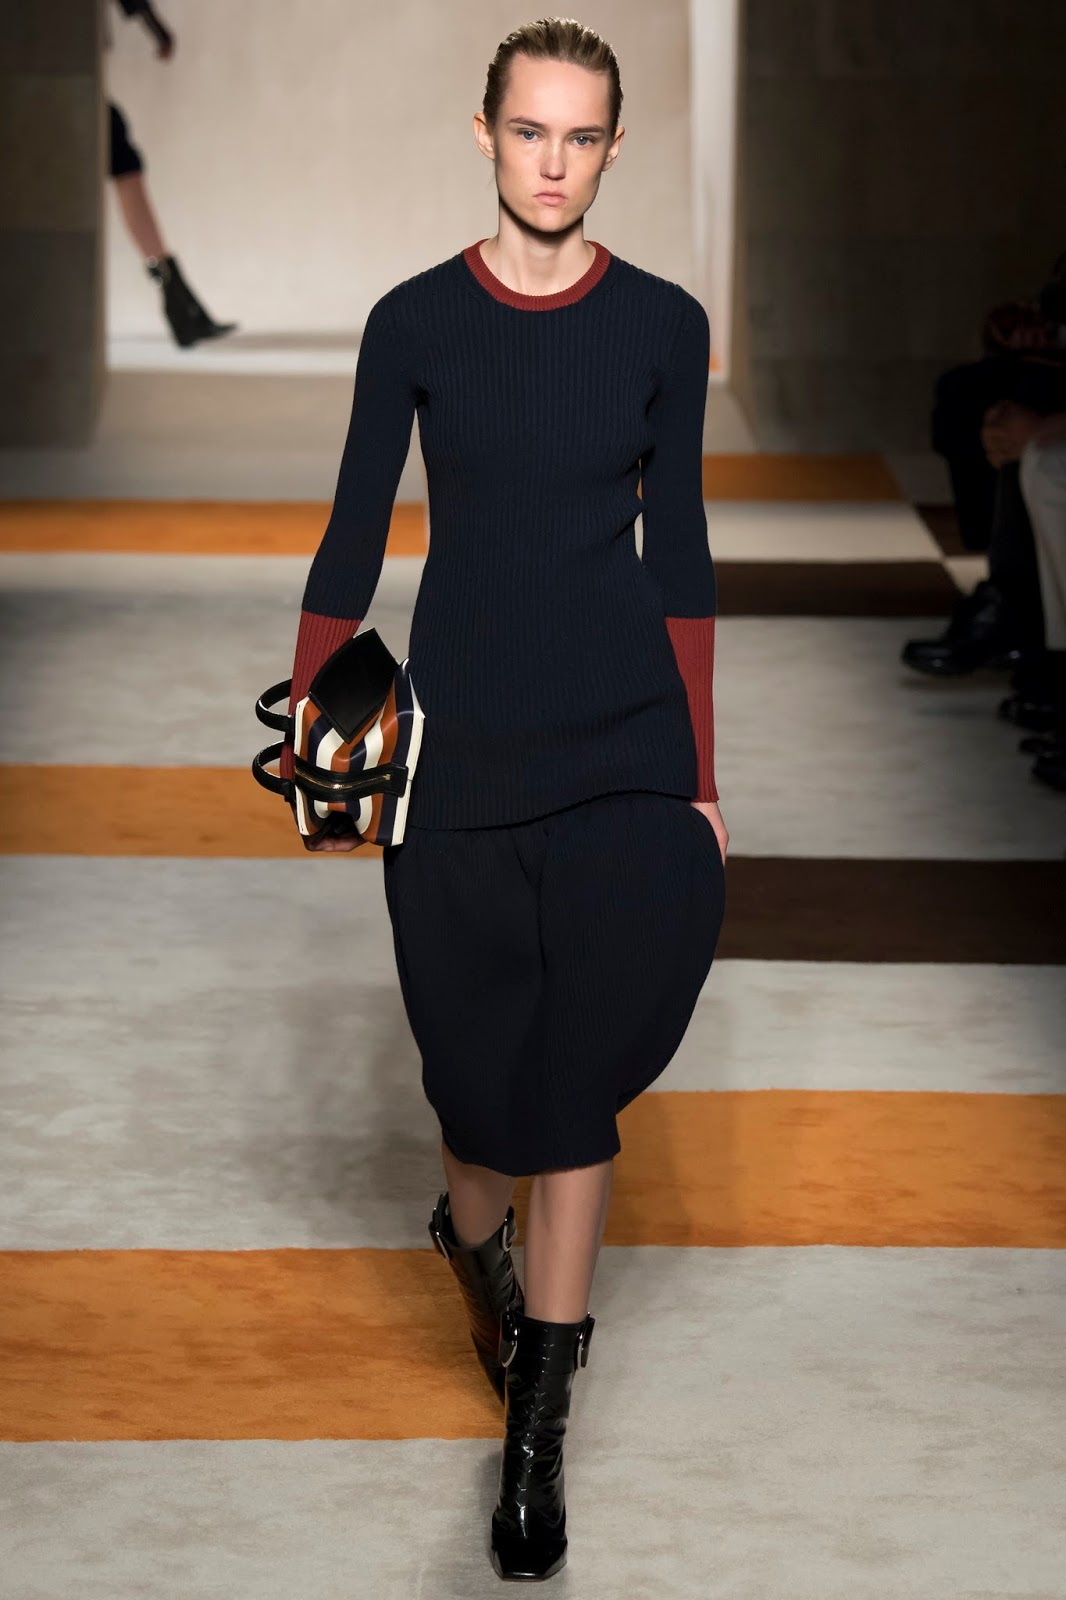 Victoria Beckham Fall/Winter 2016, New York Fashion Week, NYFW best collections via www.fashionedbylove.co.uk